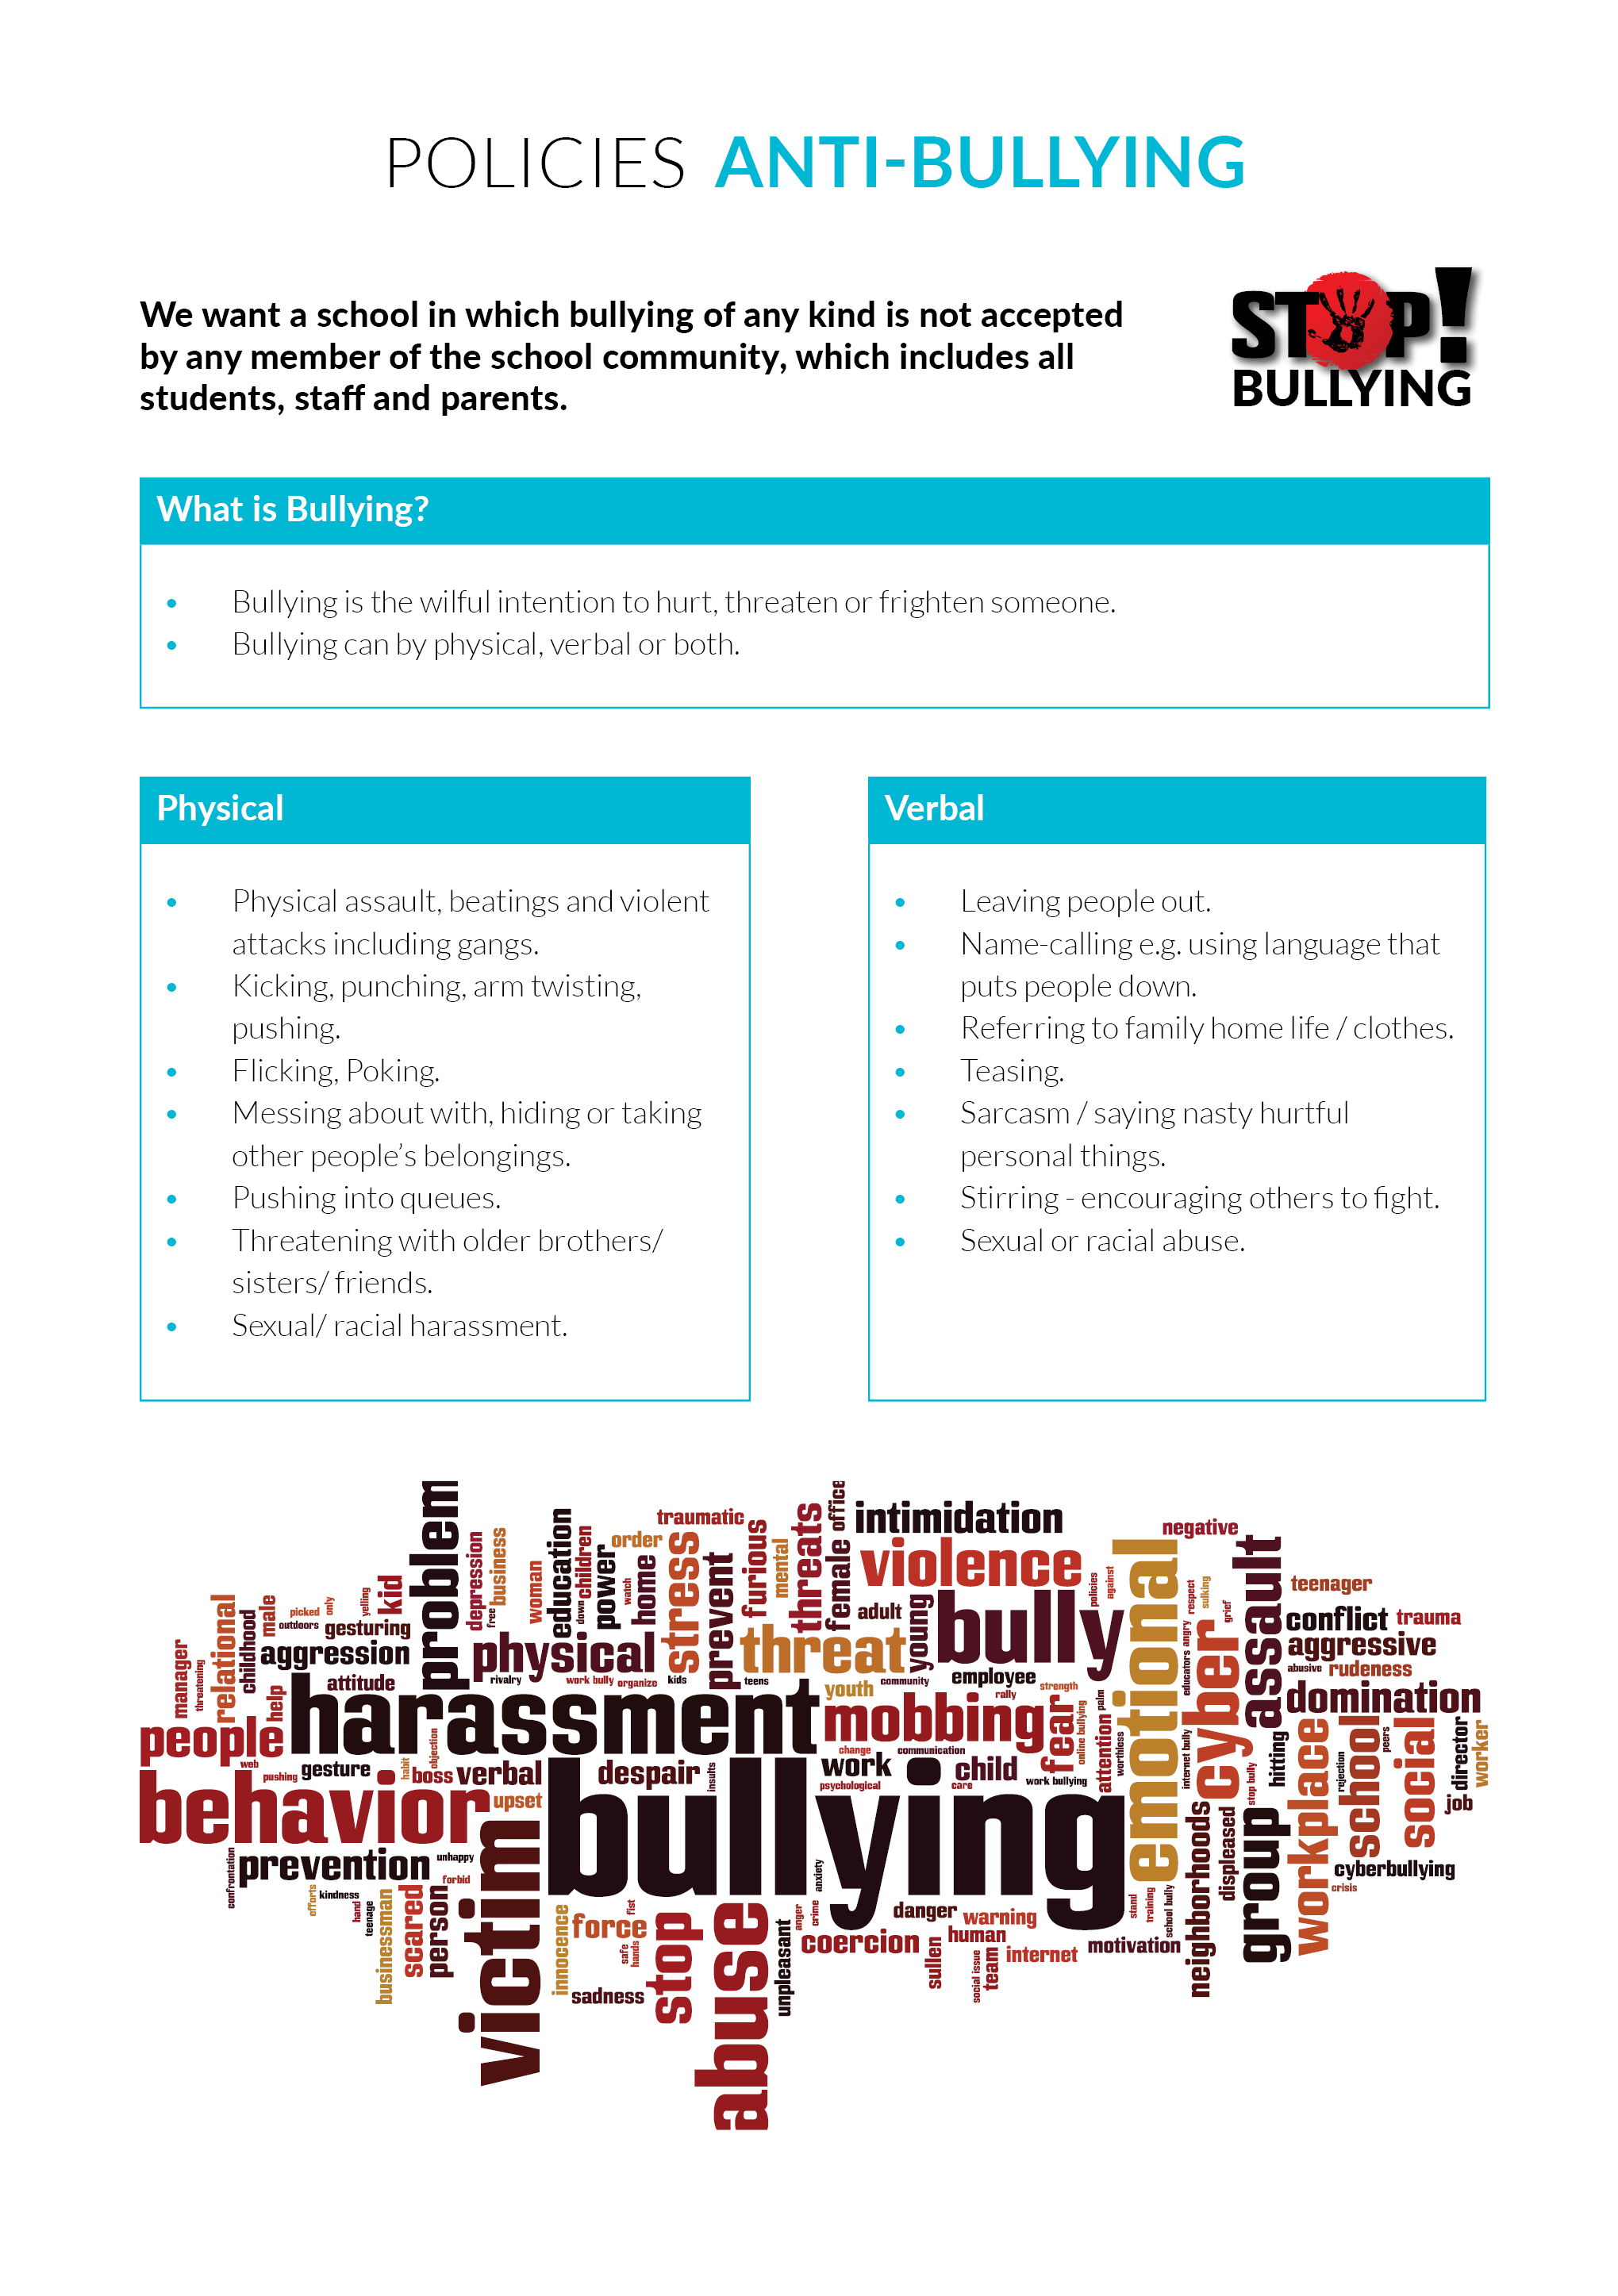 Policies - Anti Bullying